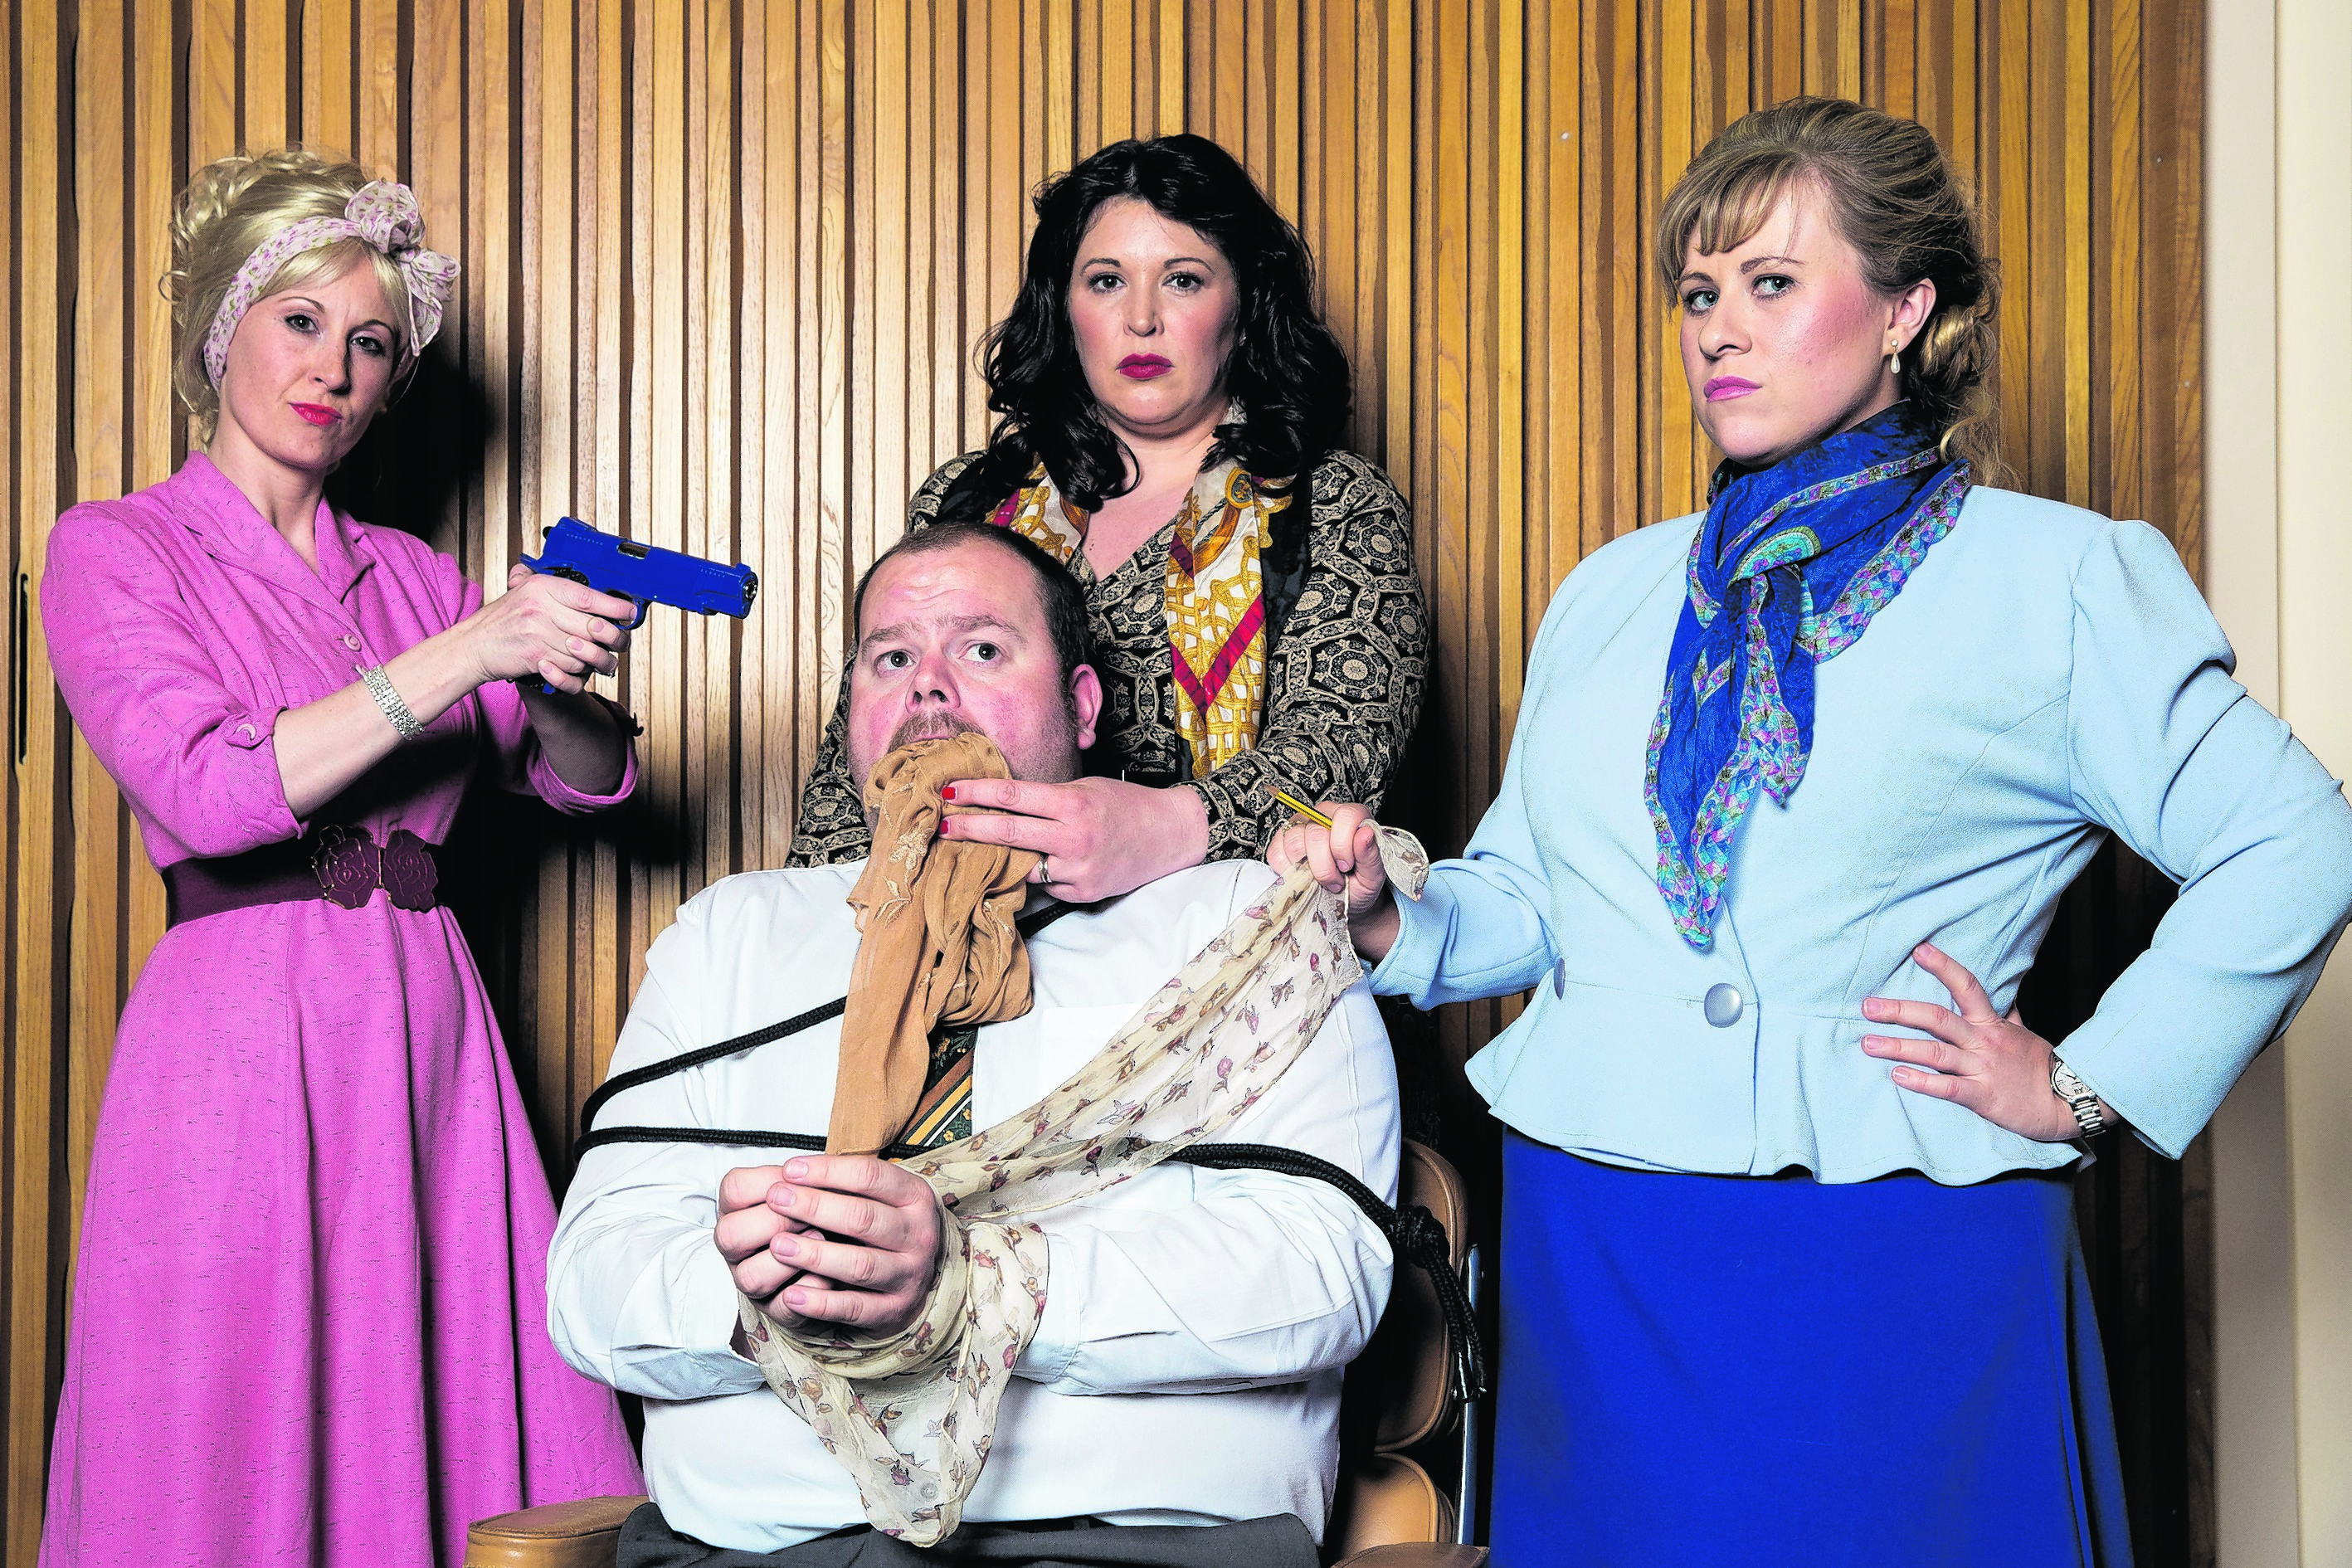 From left: Leanne Craggs as Doralee Rhodes, Samantha Gray as Violet Newstead, Amanda Watt as Judy Bernly, with Scott Jamieson as Franklin Hart